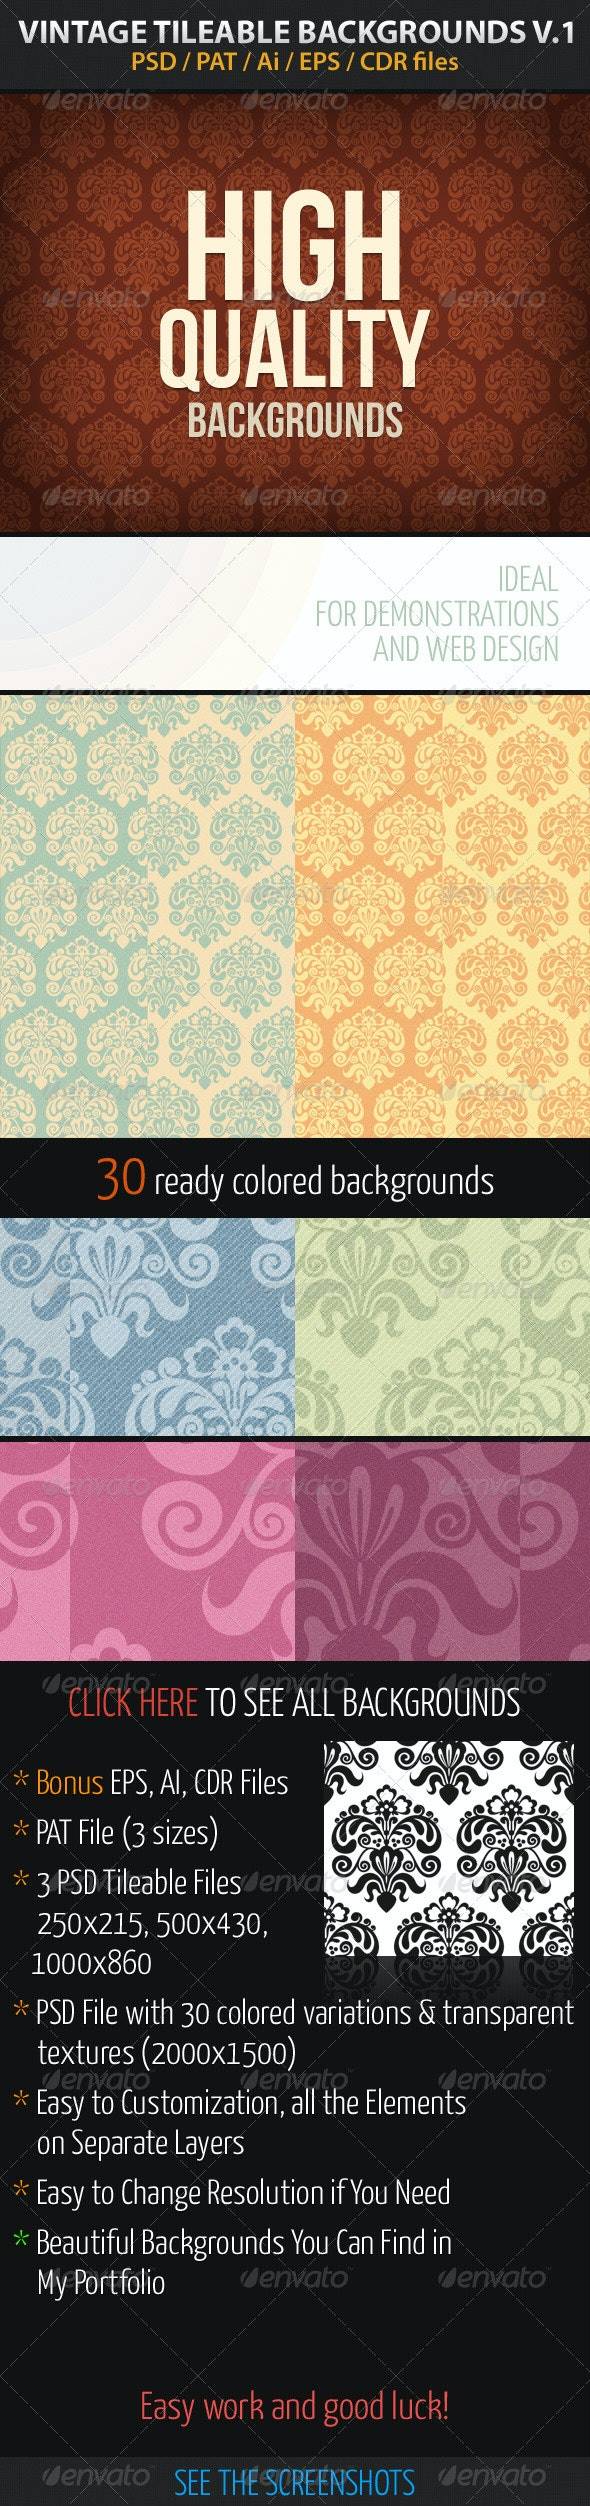 Vintage Tileable Backgrounds v1 - Abstract Backgrounds